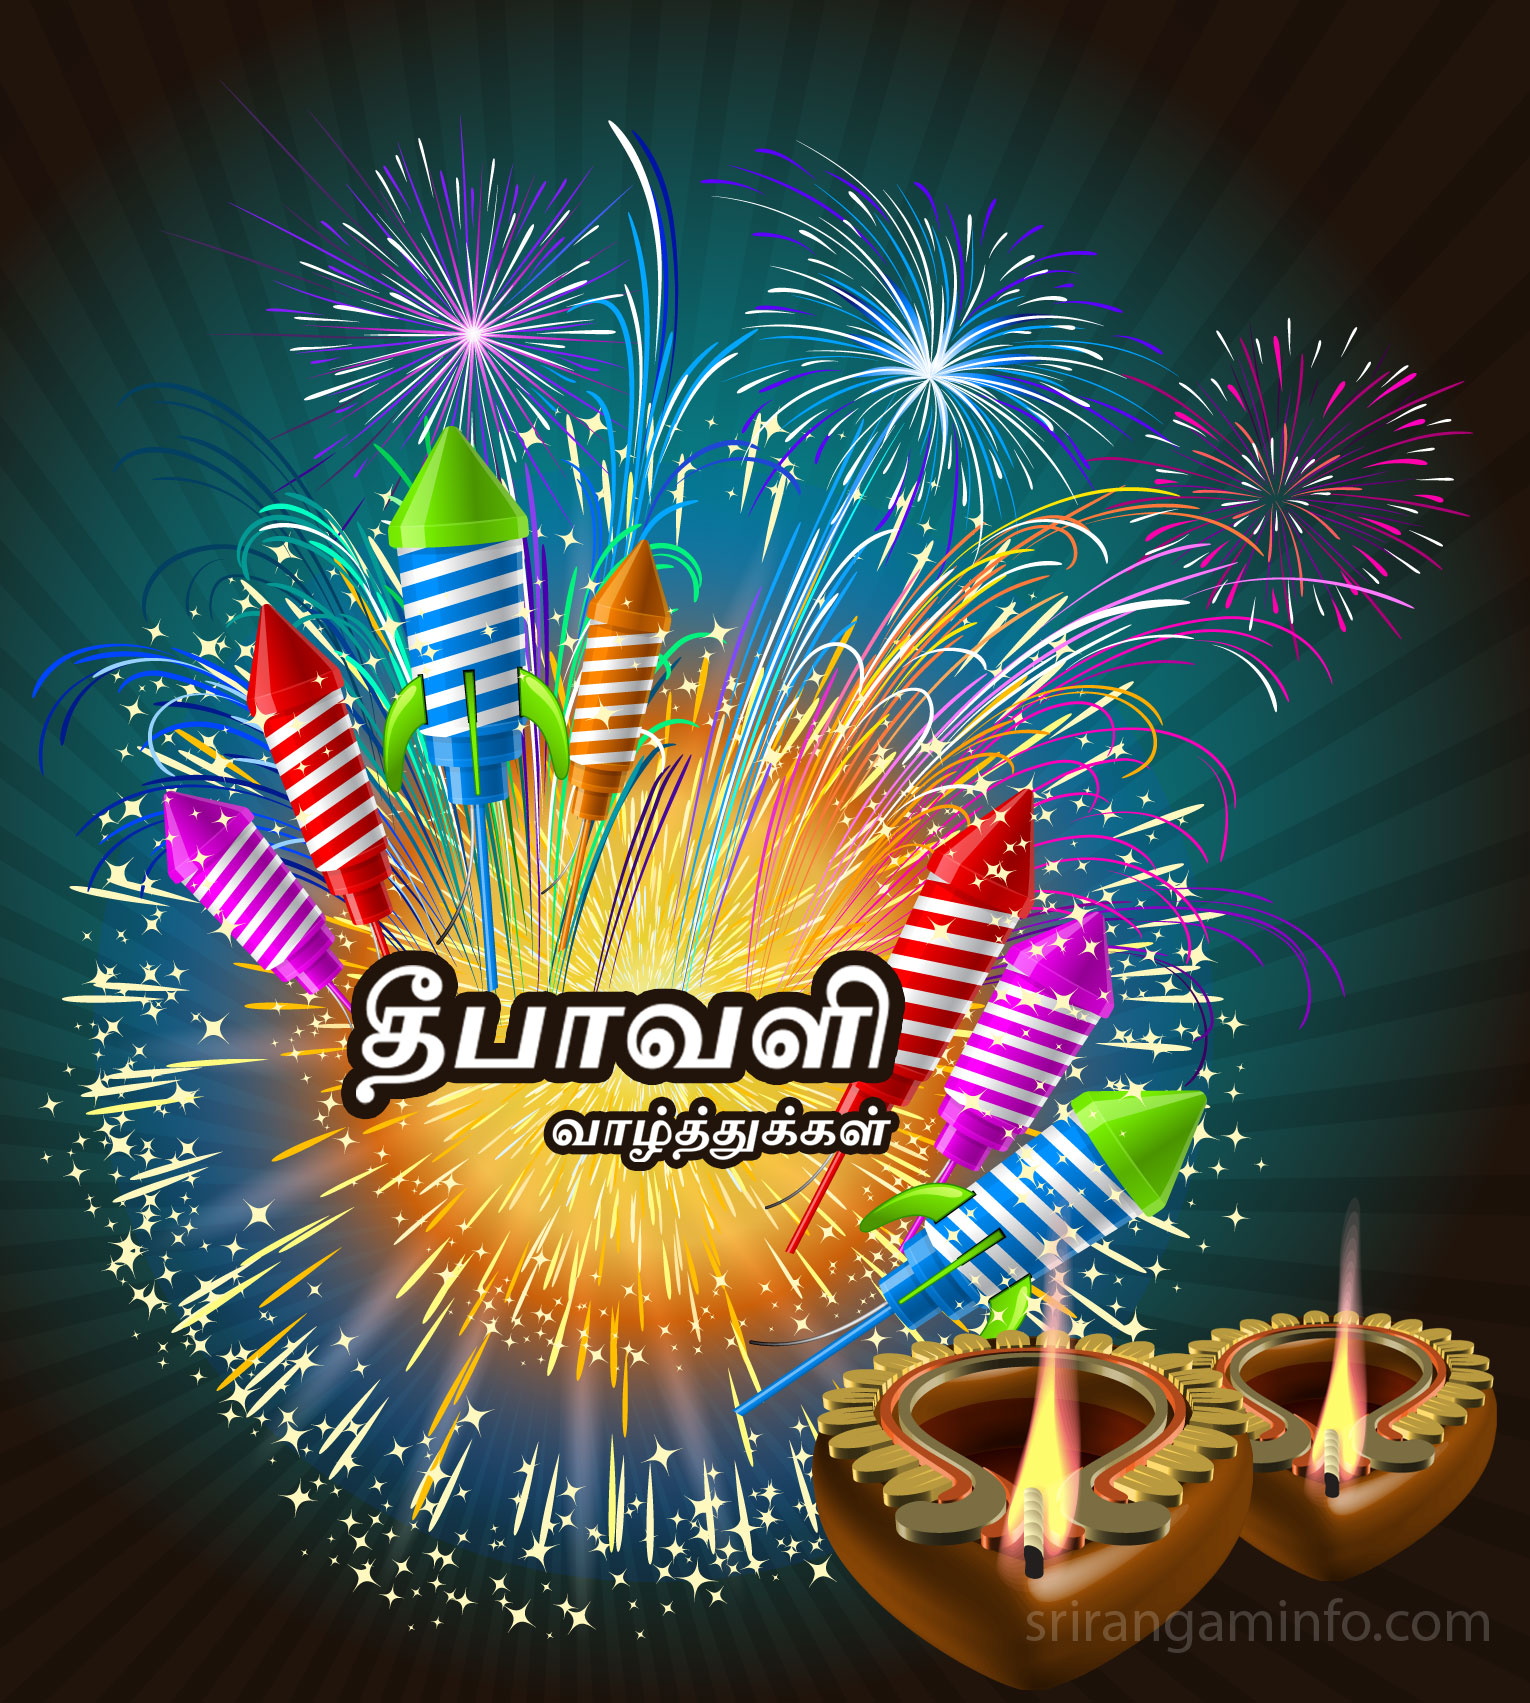 Deepavali greetings in tamil 2018 deepavali greetings tamil happy diwali in tamils m4hsunfo